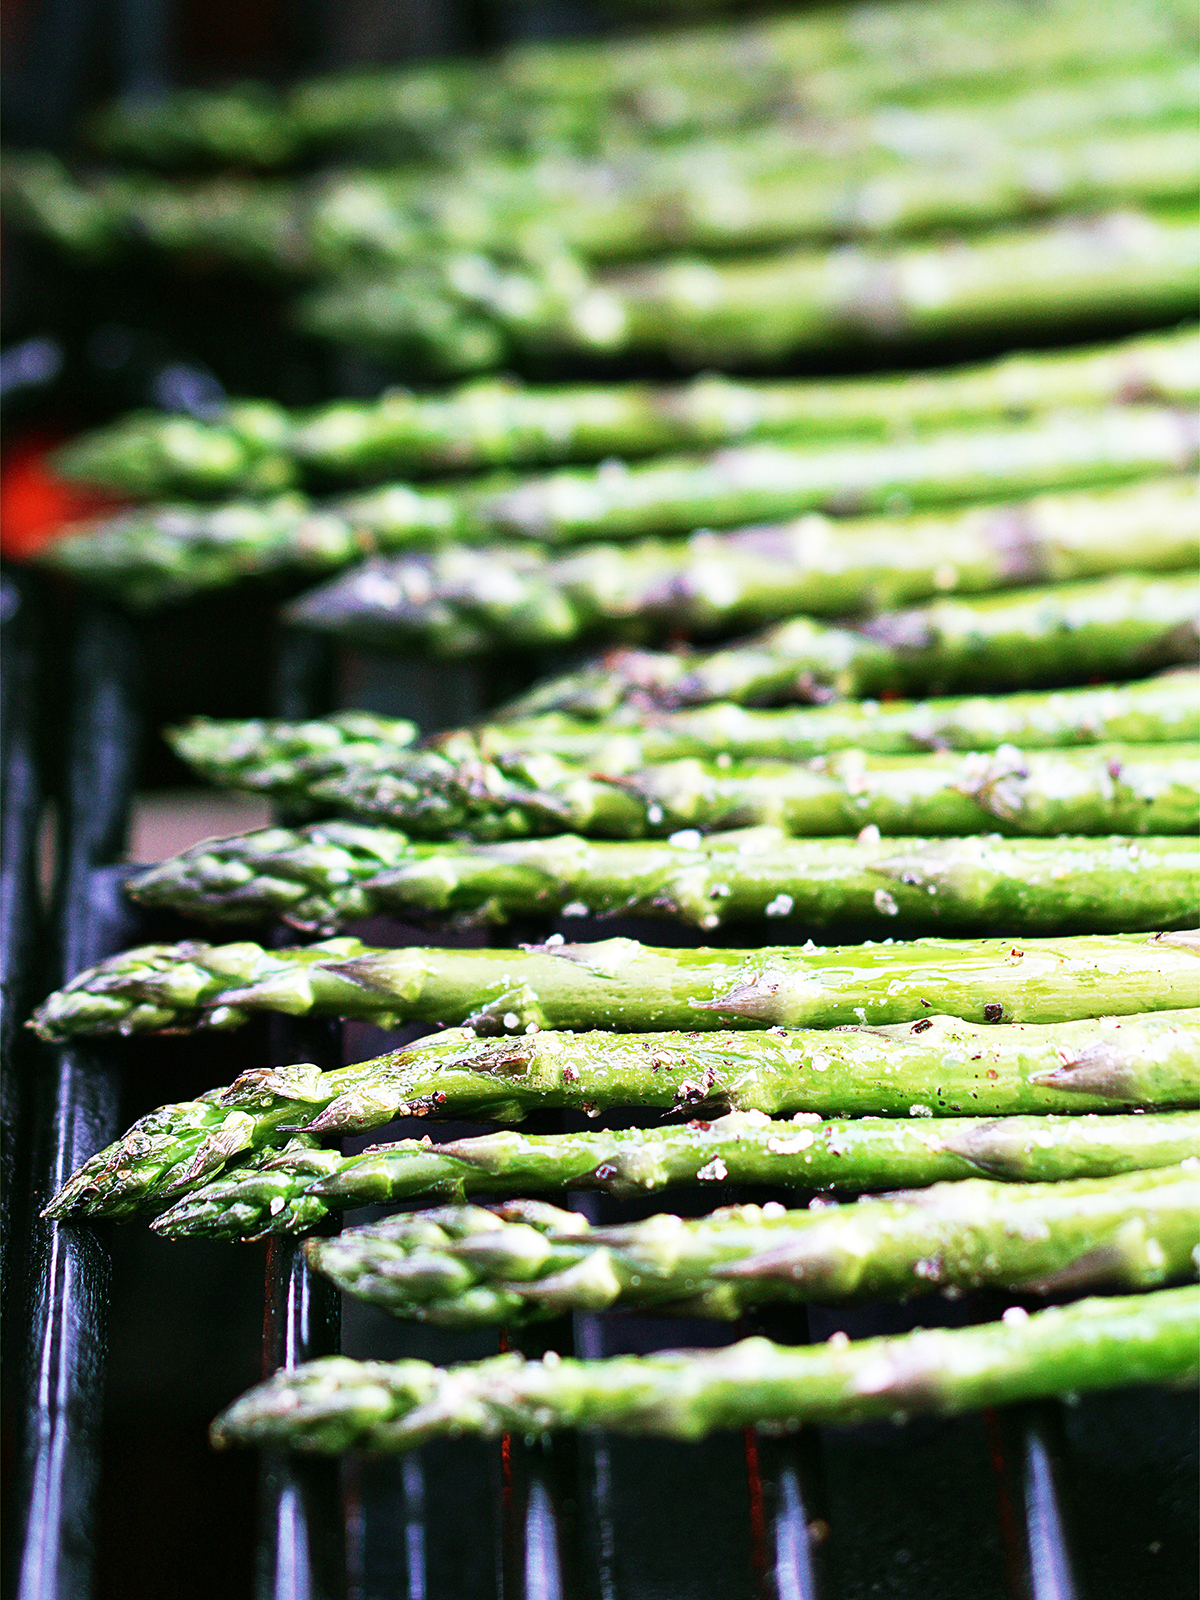 Grilling asparagus on a gas grill